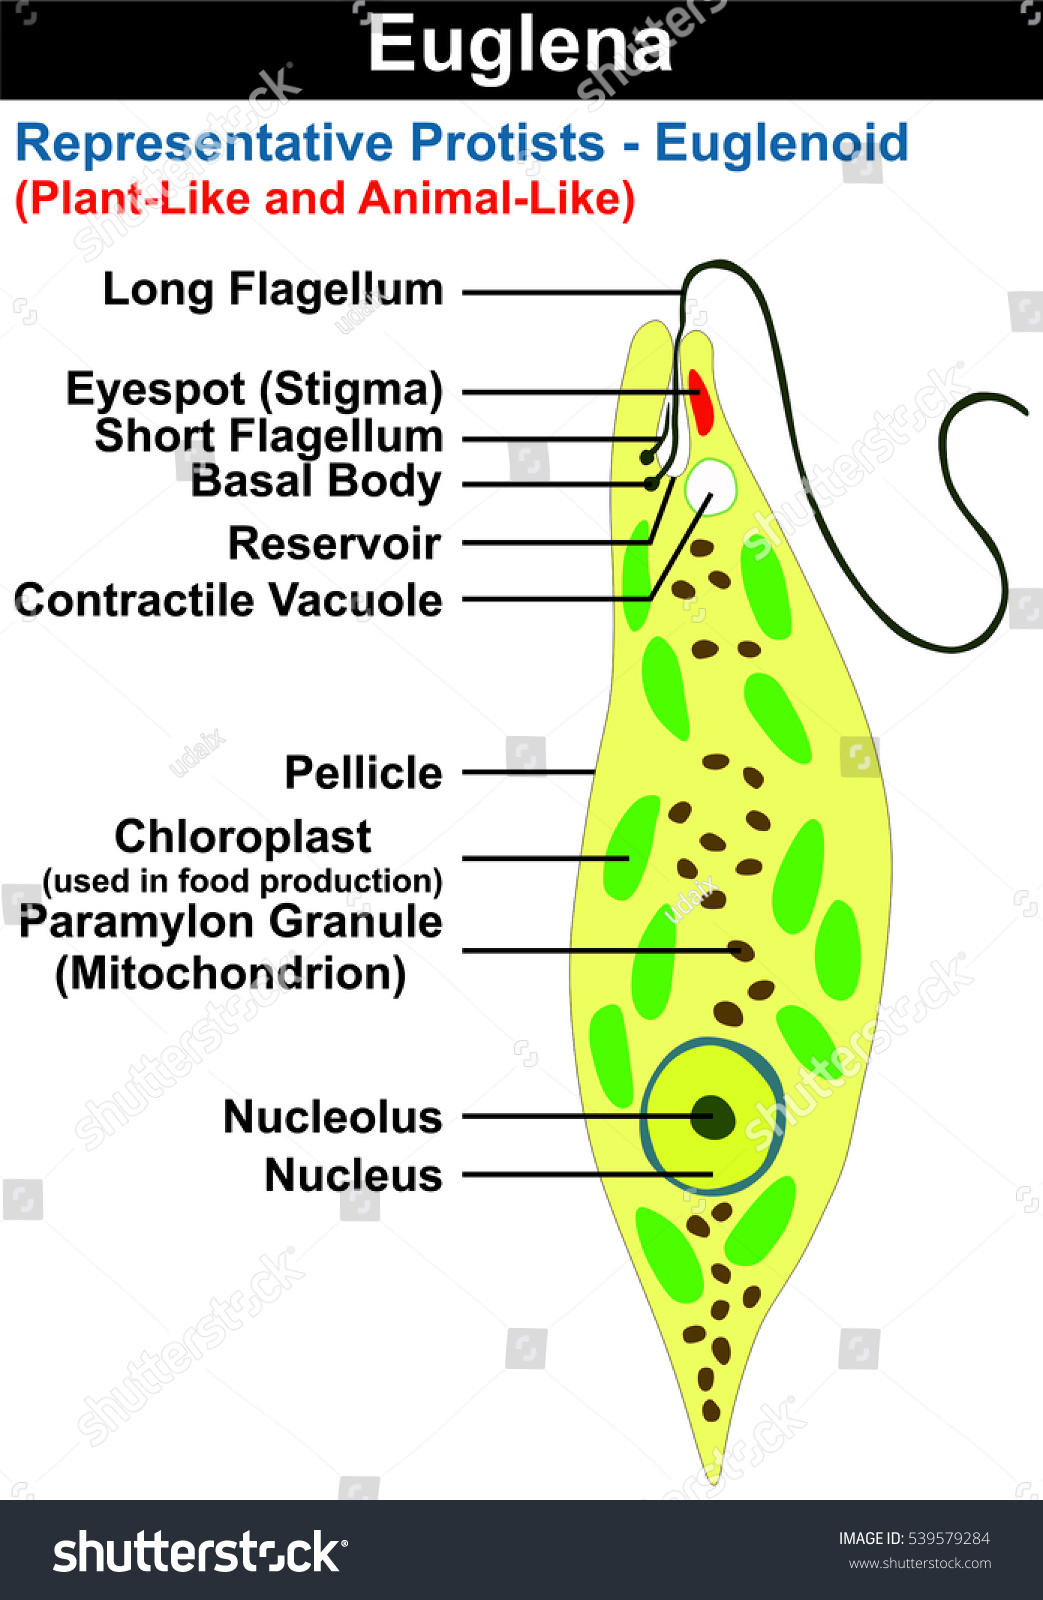 euglena diagram labeled 400 magnification relay wiring 5 pole the gallery for gt